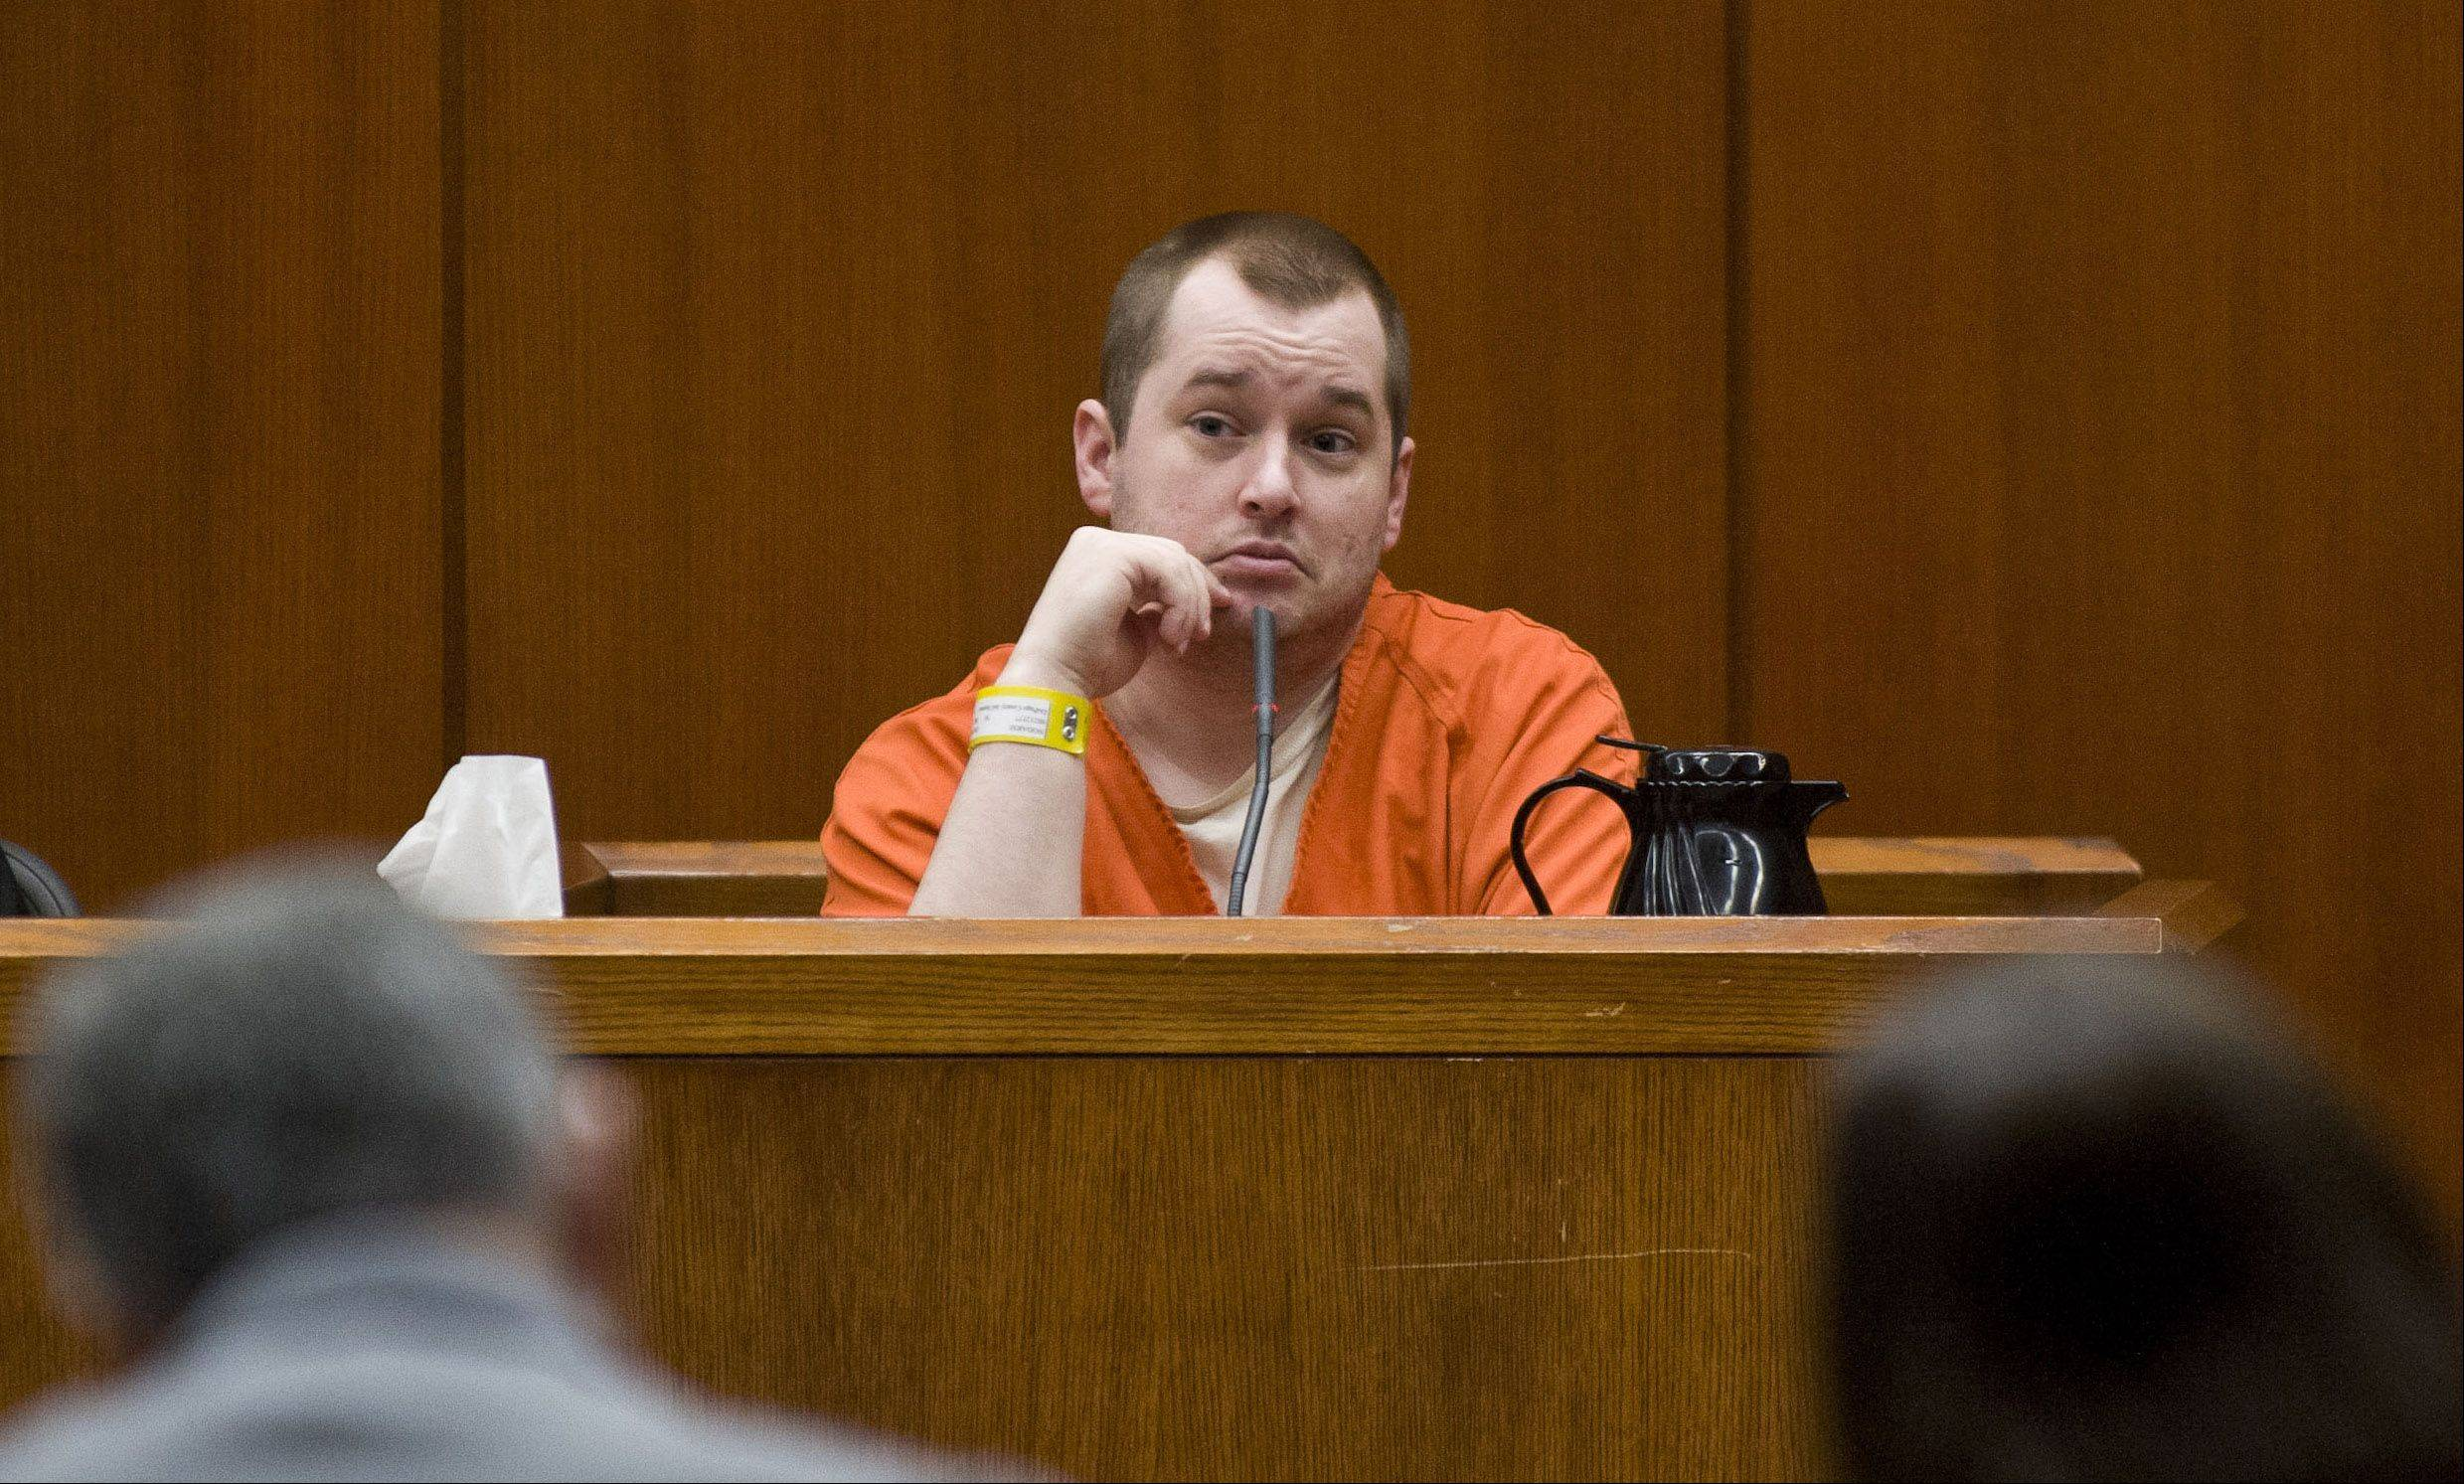 Witness Jacob Nodarse answers questions during cross examination in the murder trial of Johnny Borizov at DuPage County Courthouse in Wheaton Tuesday, April 30, 2013. | Rich Hein~Sun-Times